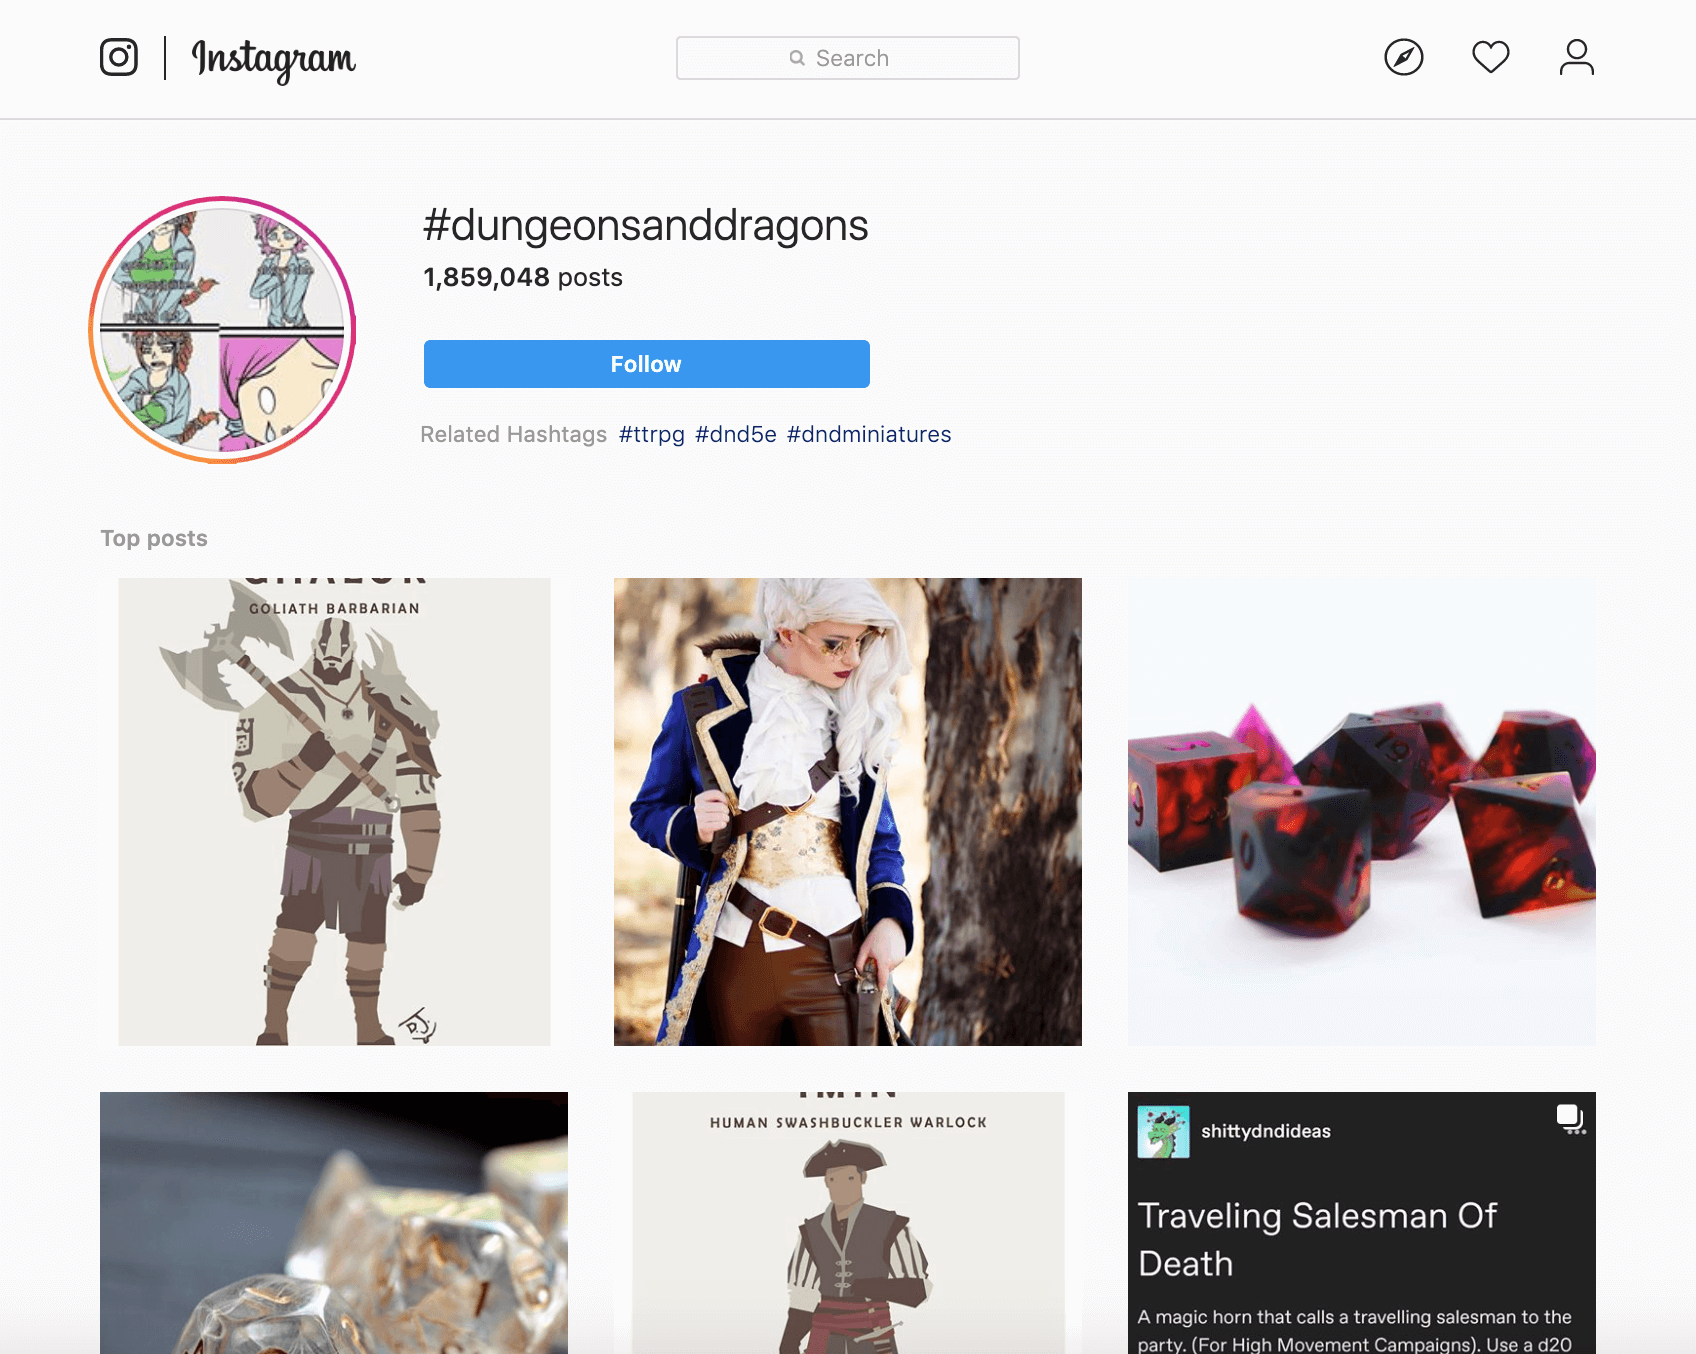 Amazon product niches: Instagram search results page for Dungeons and Dragons